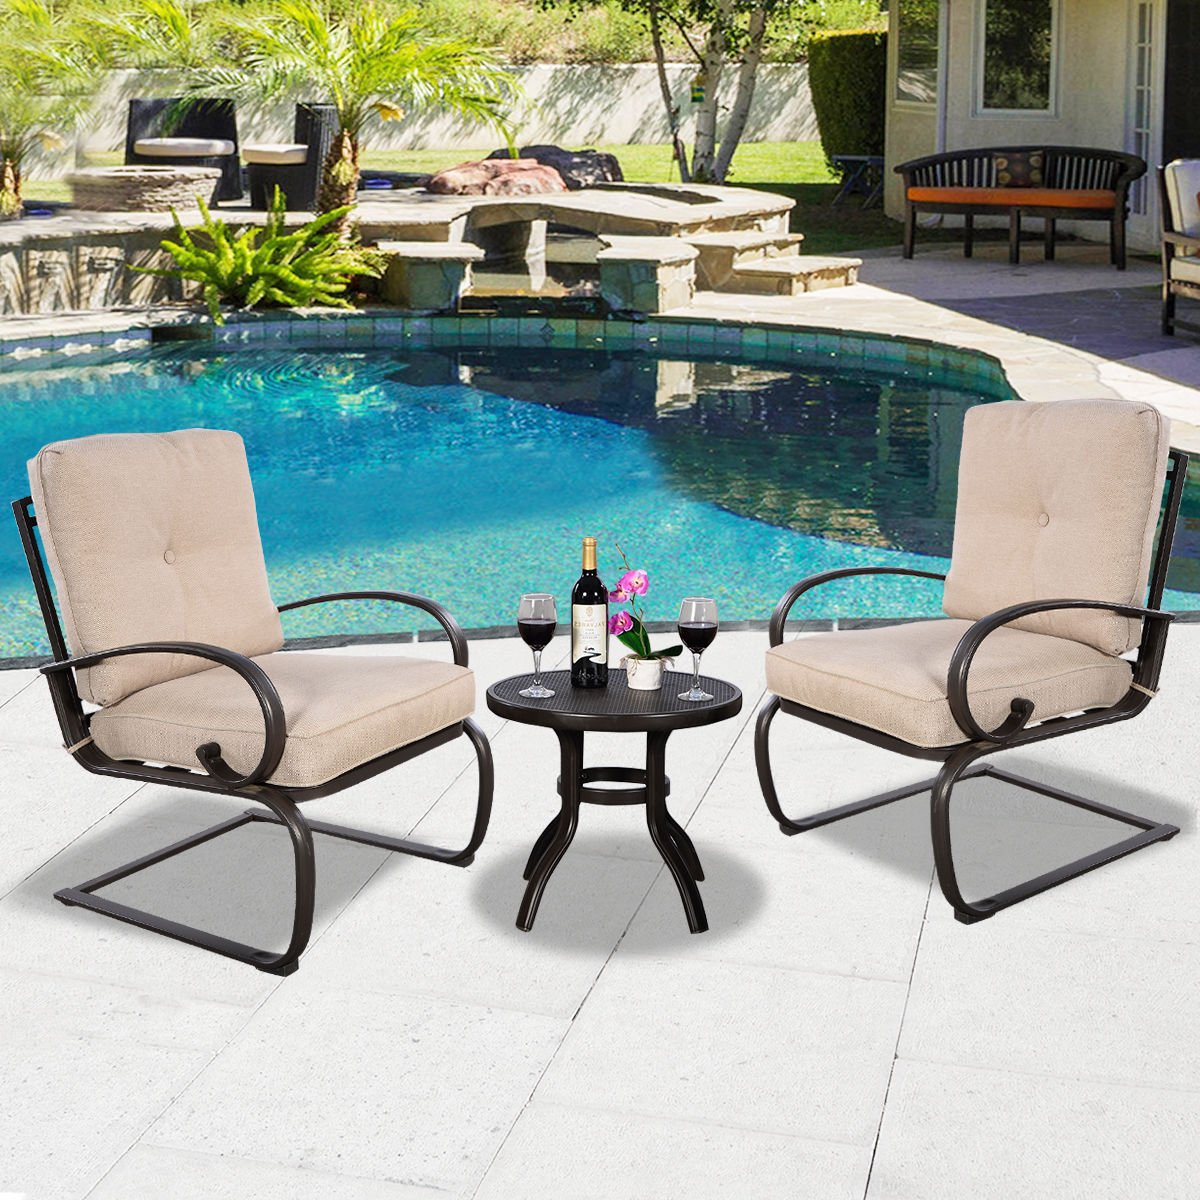 UBRTools 3 Pcs Outdoor Bistro Patio Dining Set Round Table 2 Seats With Cushion Furniture